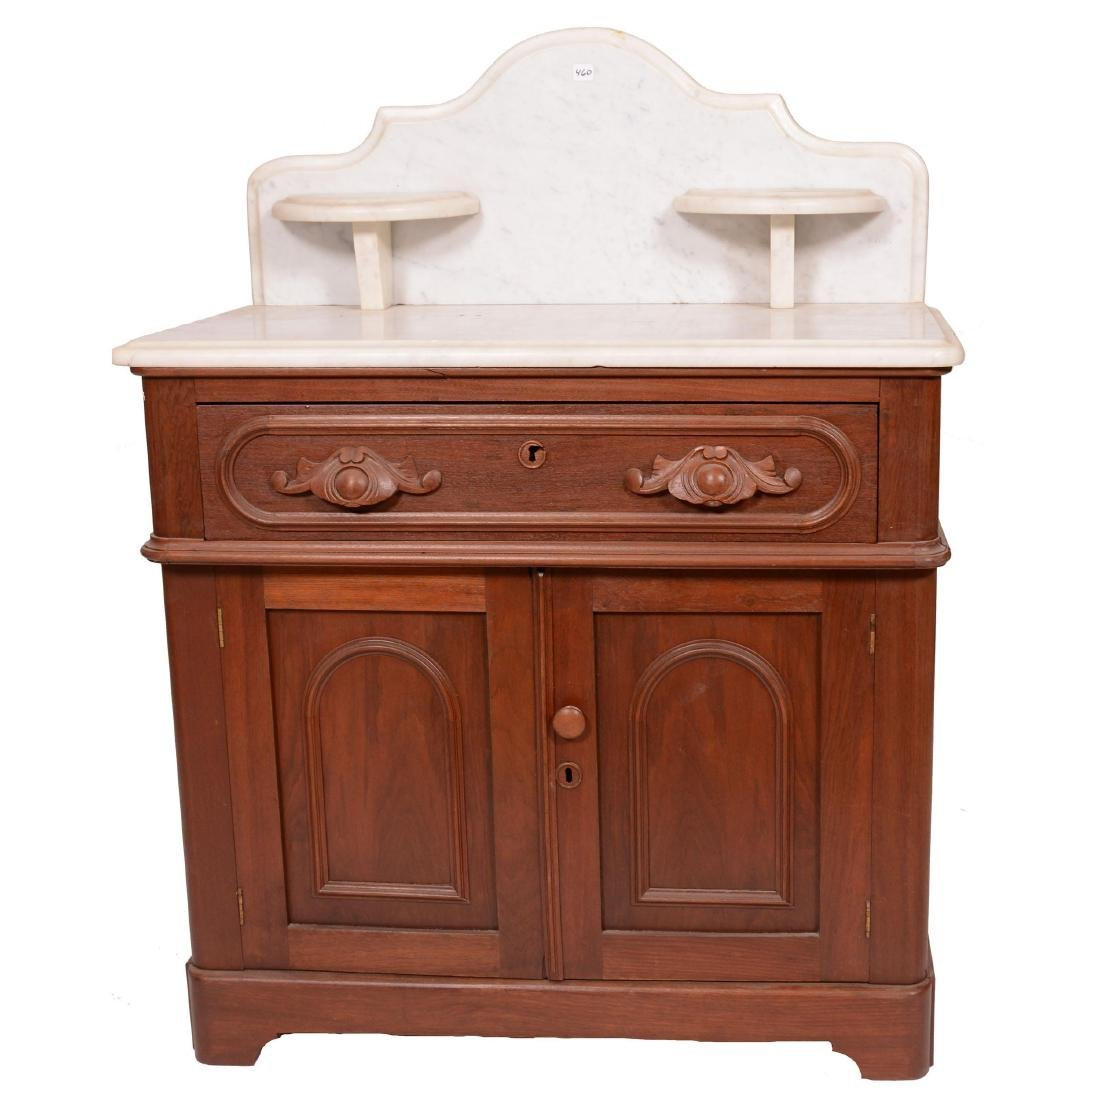 Walnut Commode with White Marble Top and Backsplash